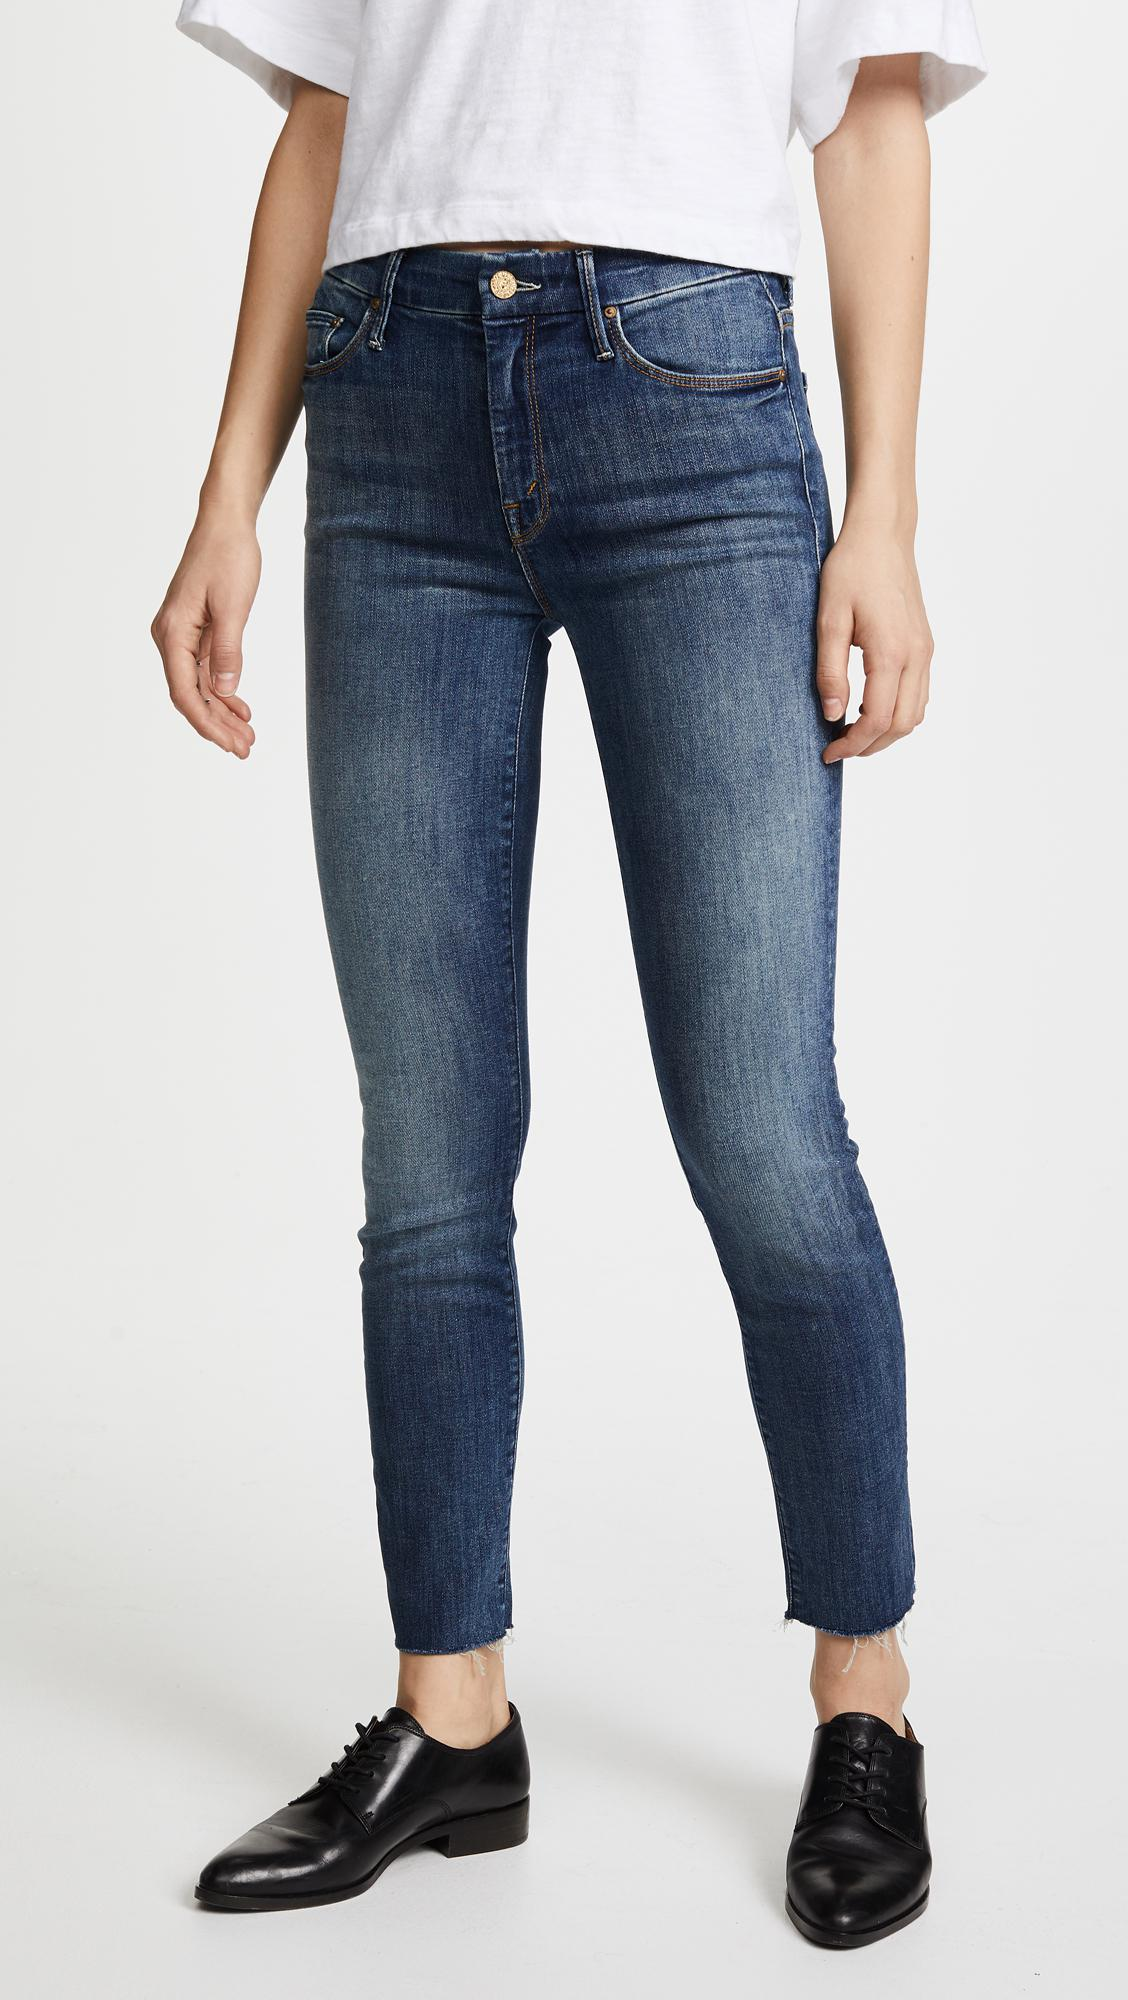 high-waisted skinny jeans - Blue Mother C1EIOr